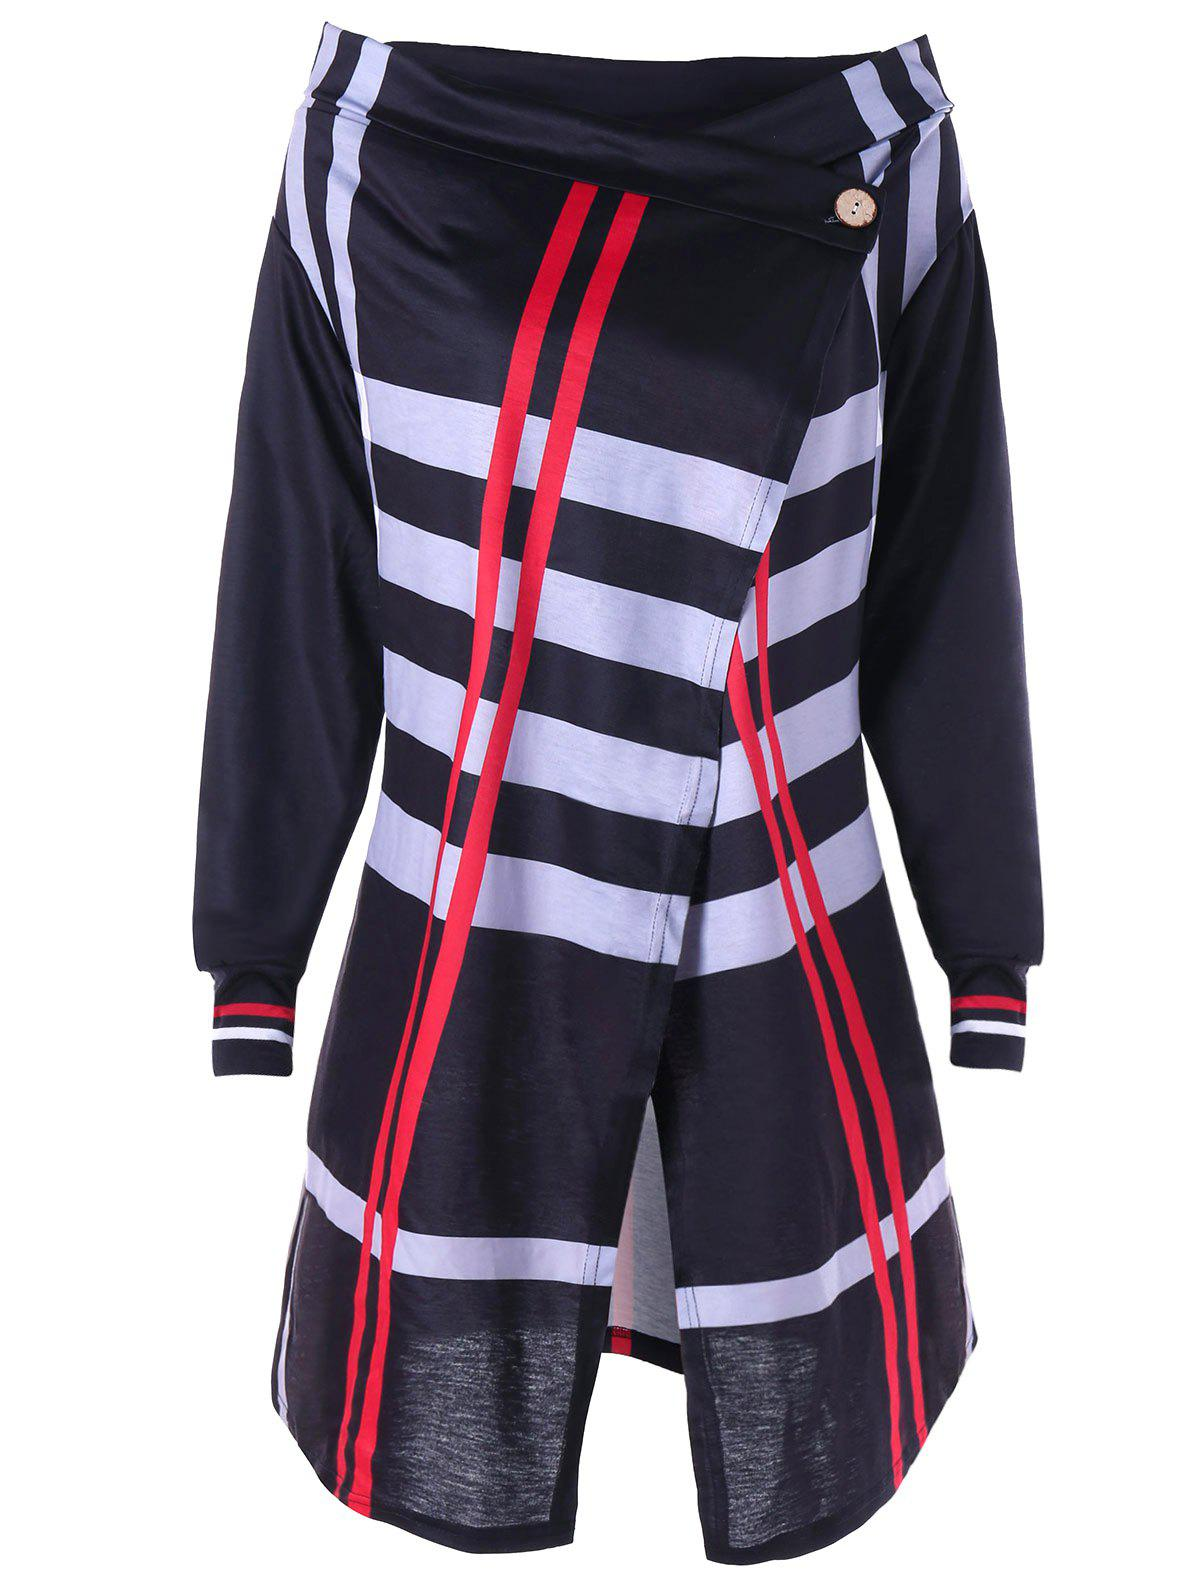 Plus Size Long Sleeve Slit Stripes CoatWOMEN<br><br>Size: 5XL; Color: COLORMIX; Clothes Type: Others; Material: Polyester,Spandex; Type: Asymmetric Length; Shirt Length: Long; Sleeve Length: Full; Collar: Off The Shoulder; Closure Type: Single Breasted; Pattern Type: Striped; Embellishment: Slit; Style: Casual; Season: Fall,Spring,Winter; Weight: 0.4300kg; Package Contents: 1 x Coat;